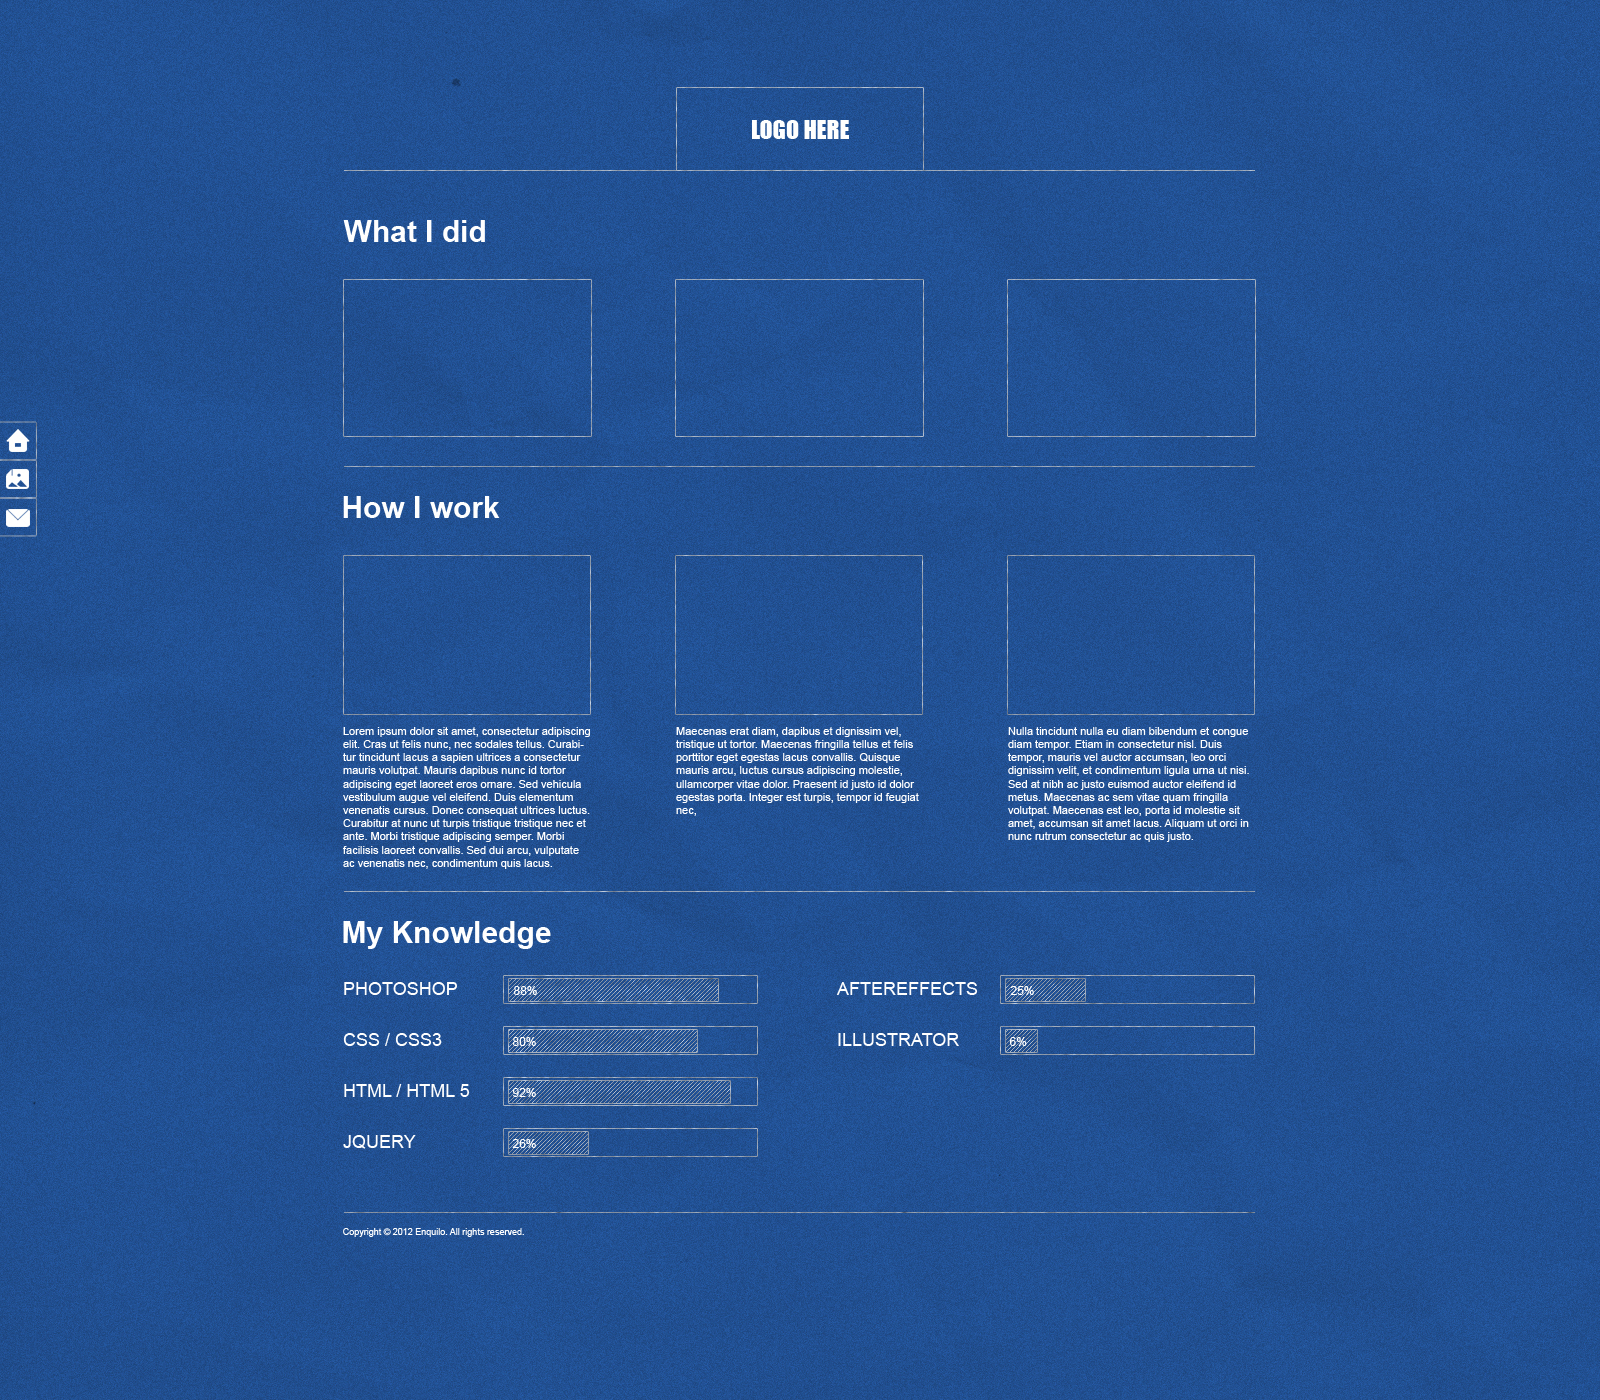 Web blueprint wireframe by enquilo on deviantart web blueprint wireframe by enquilo web blueprint wireframe by enquilo malvernweather Choice Image